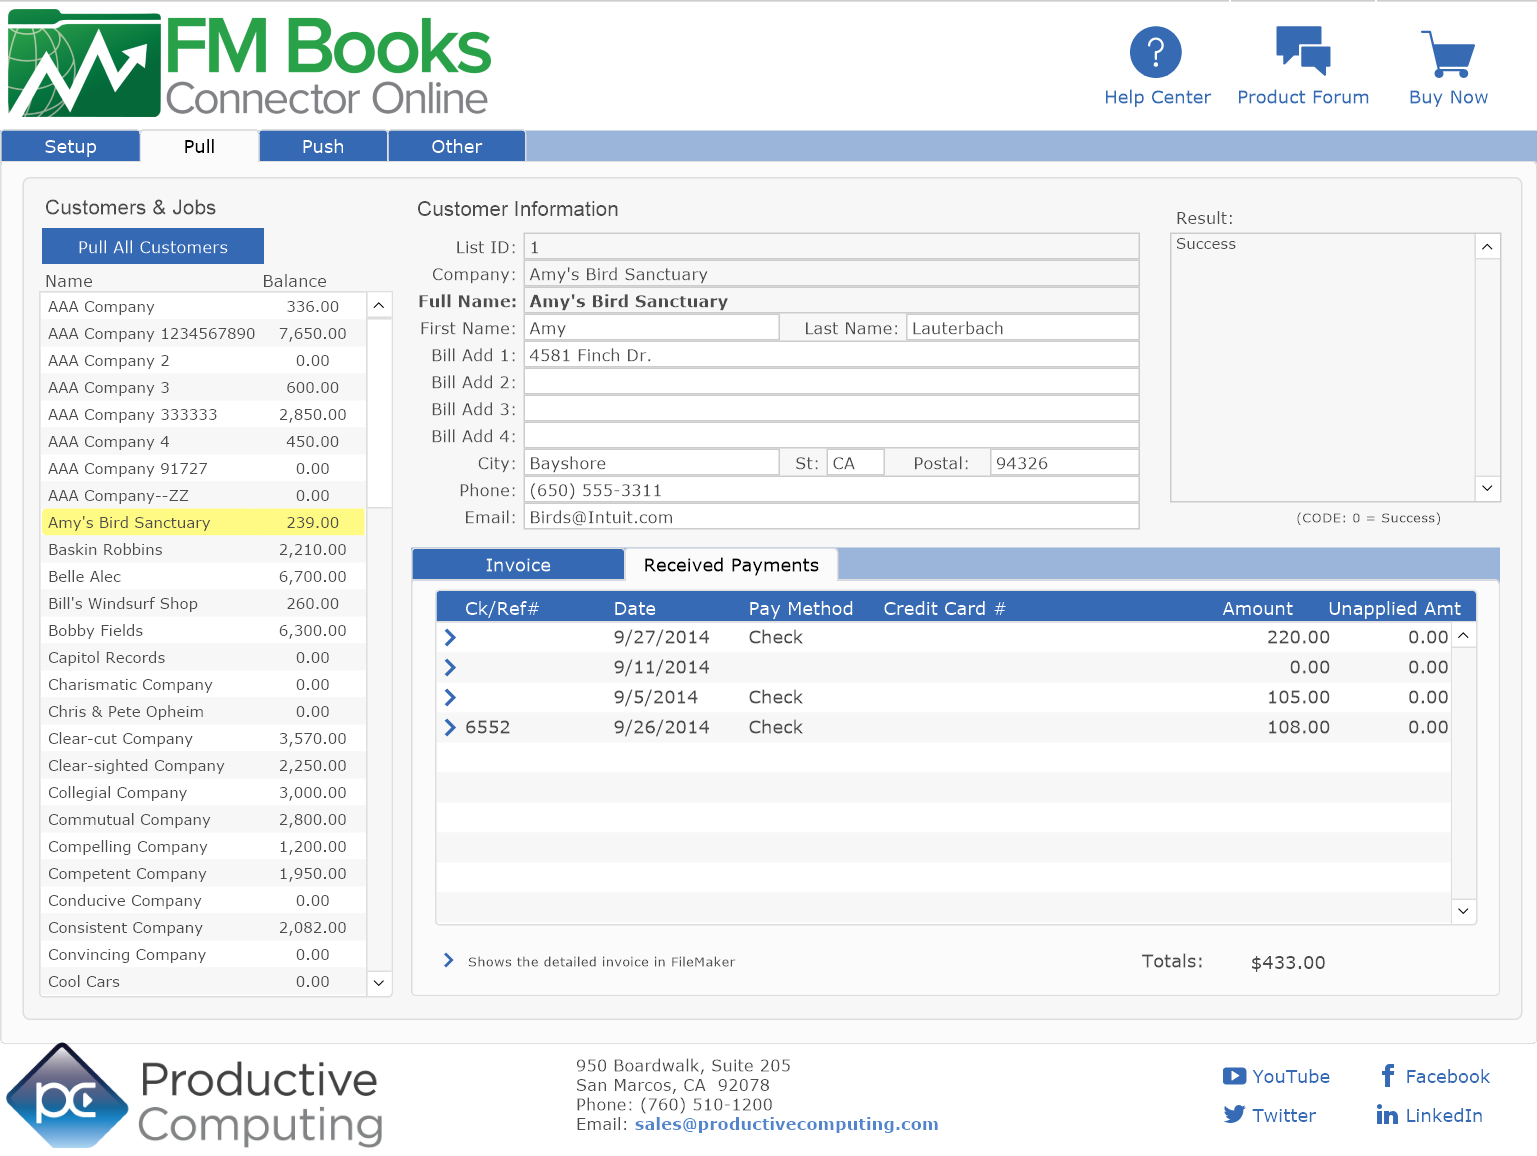 FM Books Connector Online Example